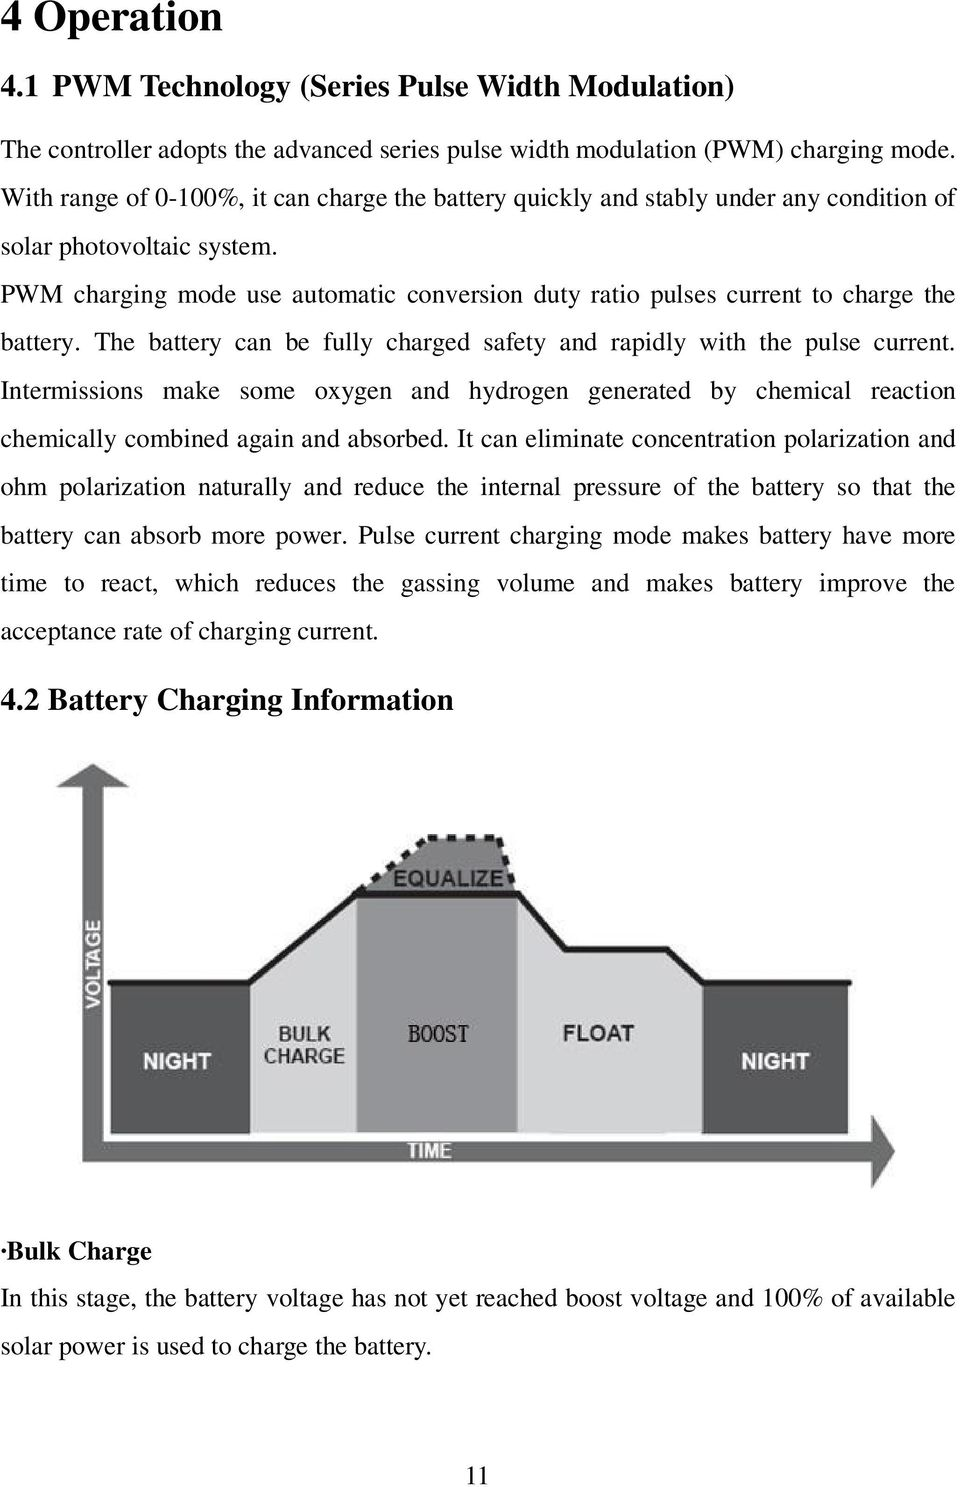 PWM charging mode use automatic conversion duty ratio pulses current to charge the battery. The battery can be fully charged safety and rapidly with the pulse current.